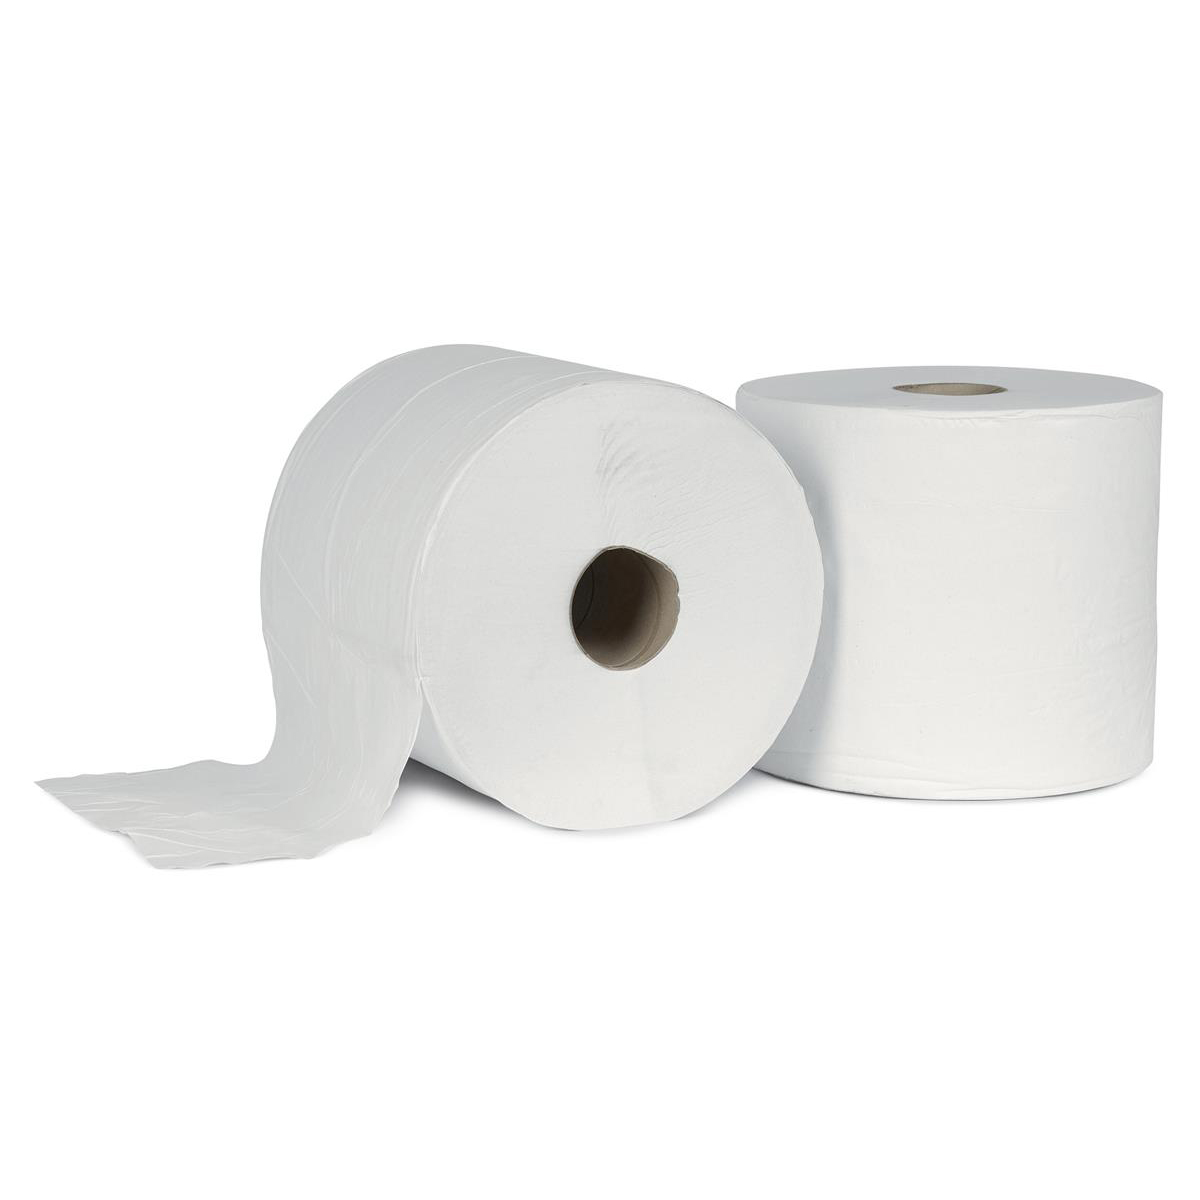 5 Star Facilities Giant Wiper Roll 2-ply Perforated Sheet 370x370mm 40gsm 1000 Sheets White [Pack 2]